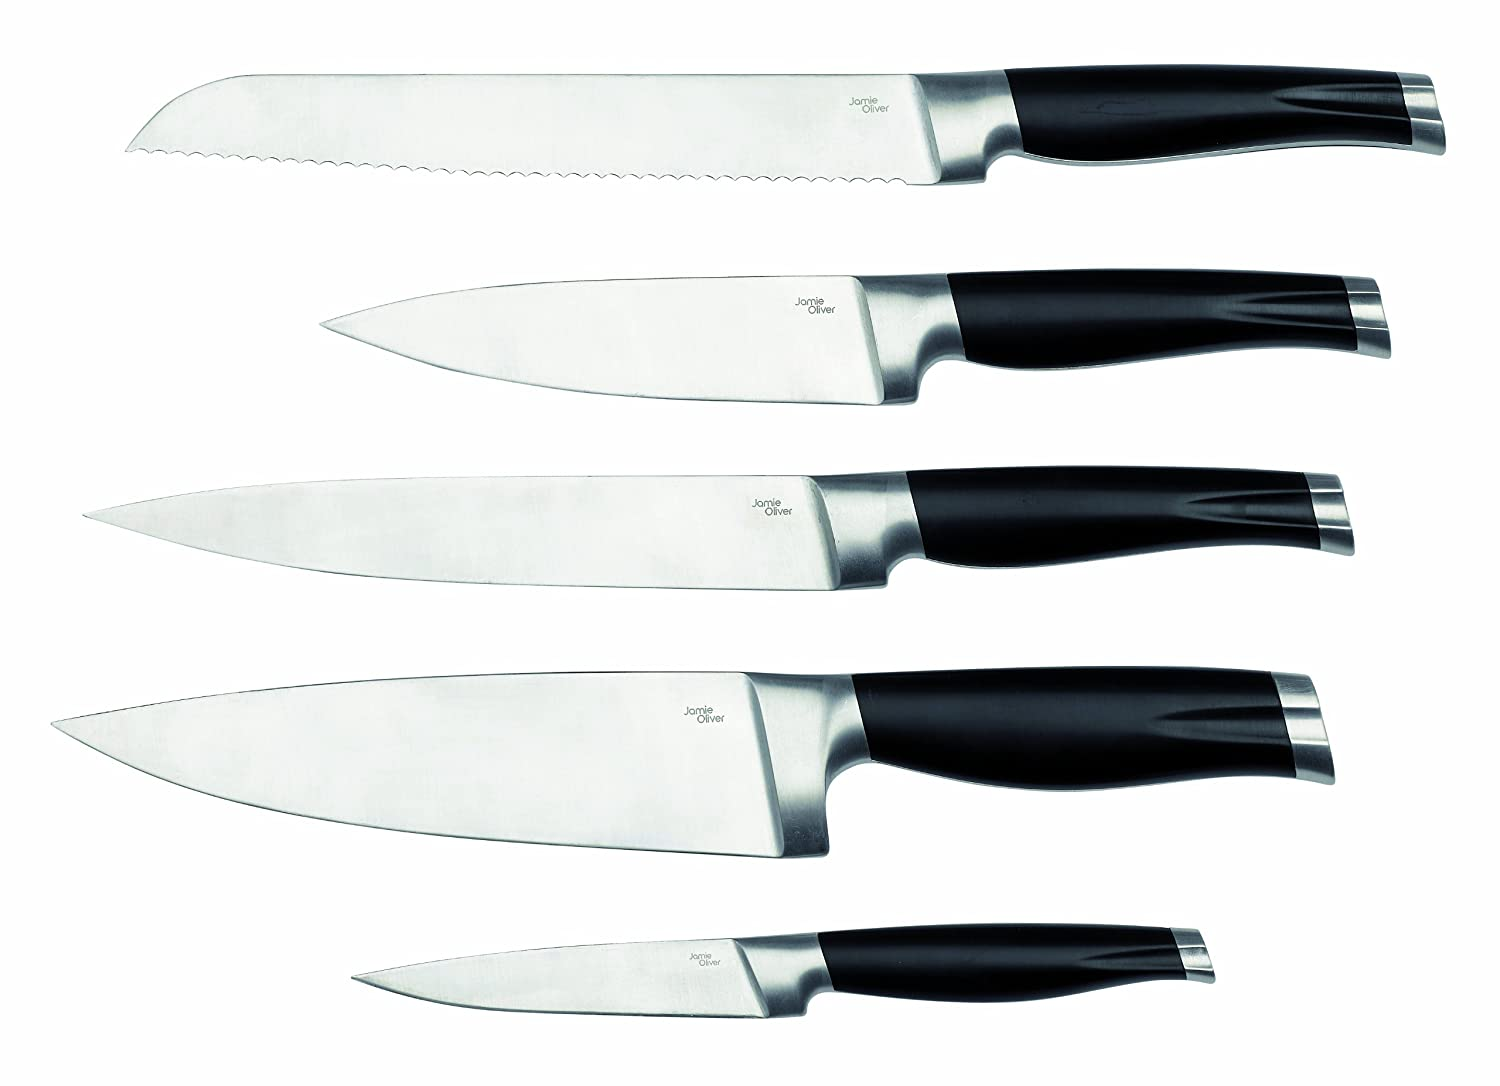 jamie oliver knives range carving knife stainless steel and